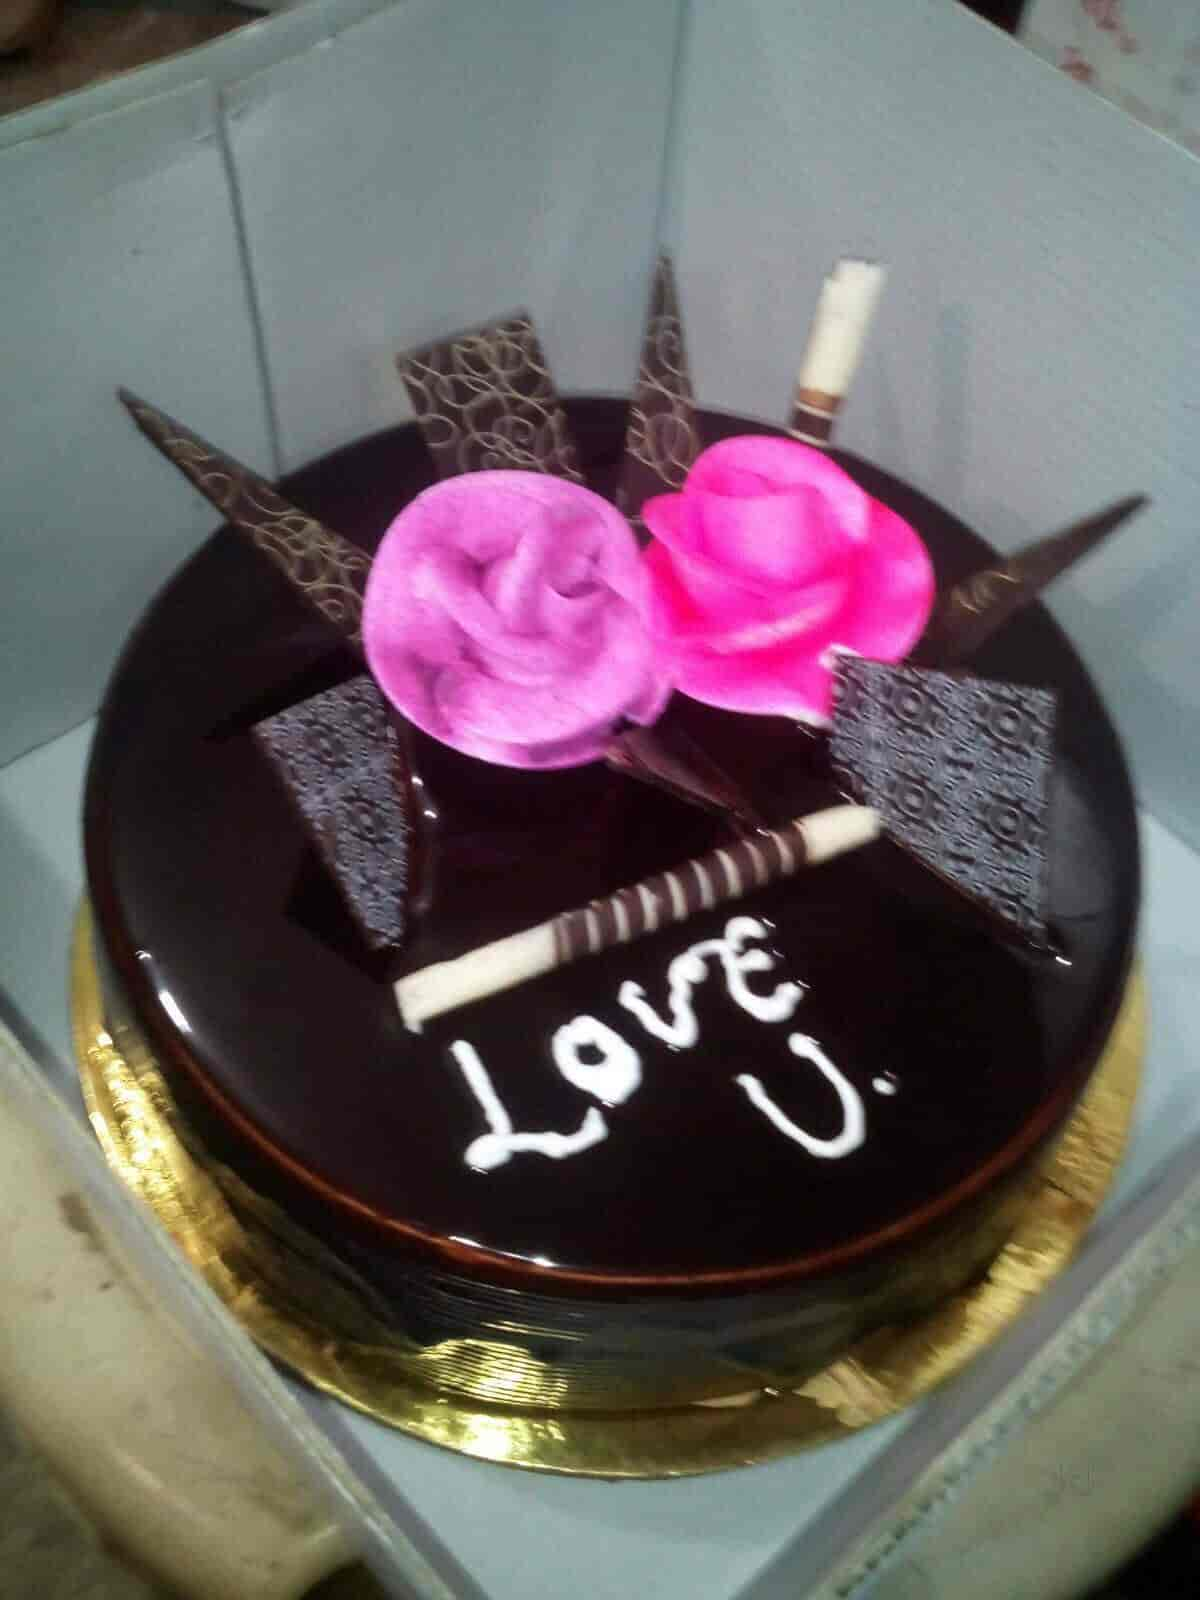 Online cake and flowers online cake flowers cake shops in online cake and flowers online cake flowers cake shops in bundi justdial izmirmasajfo Image collections